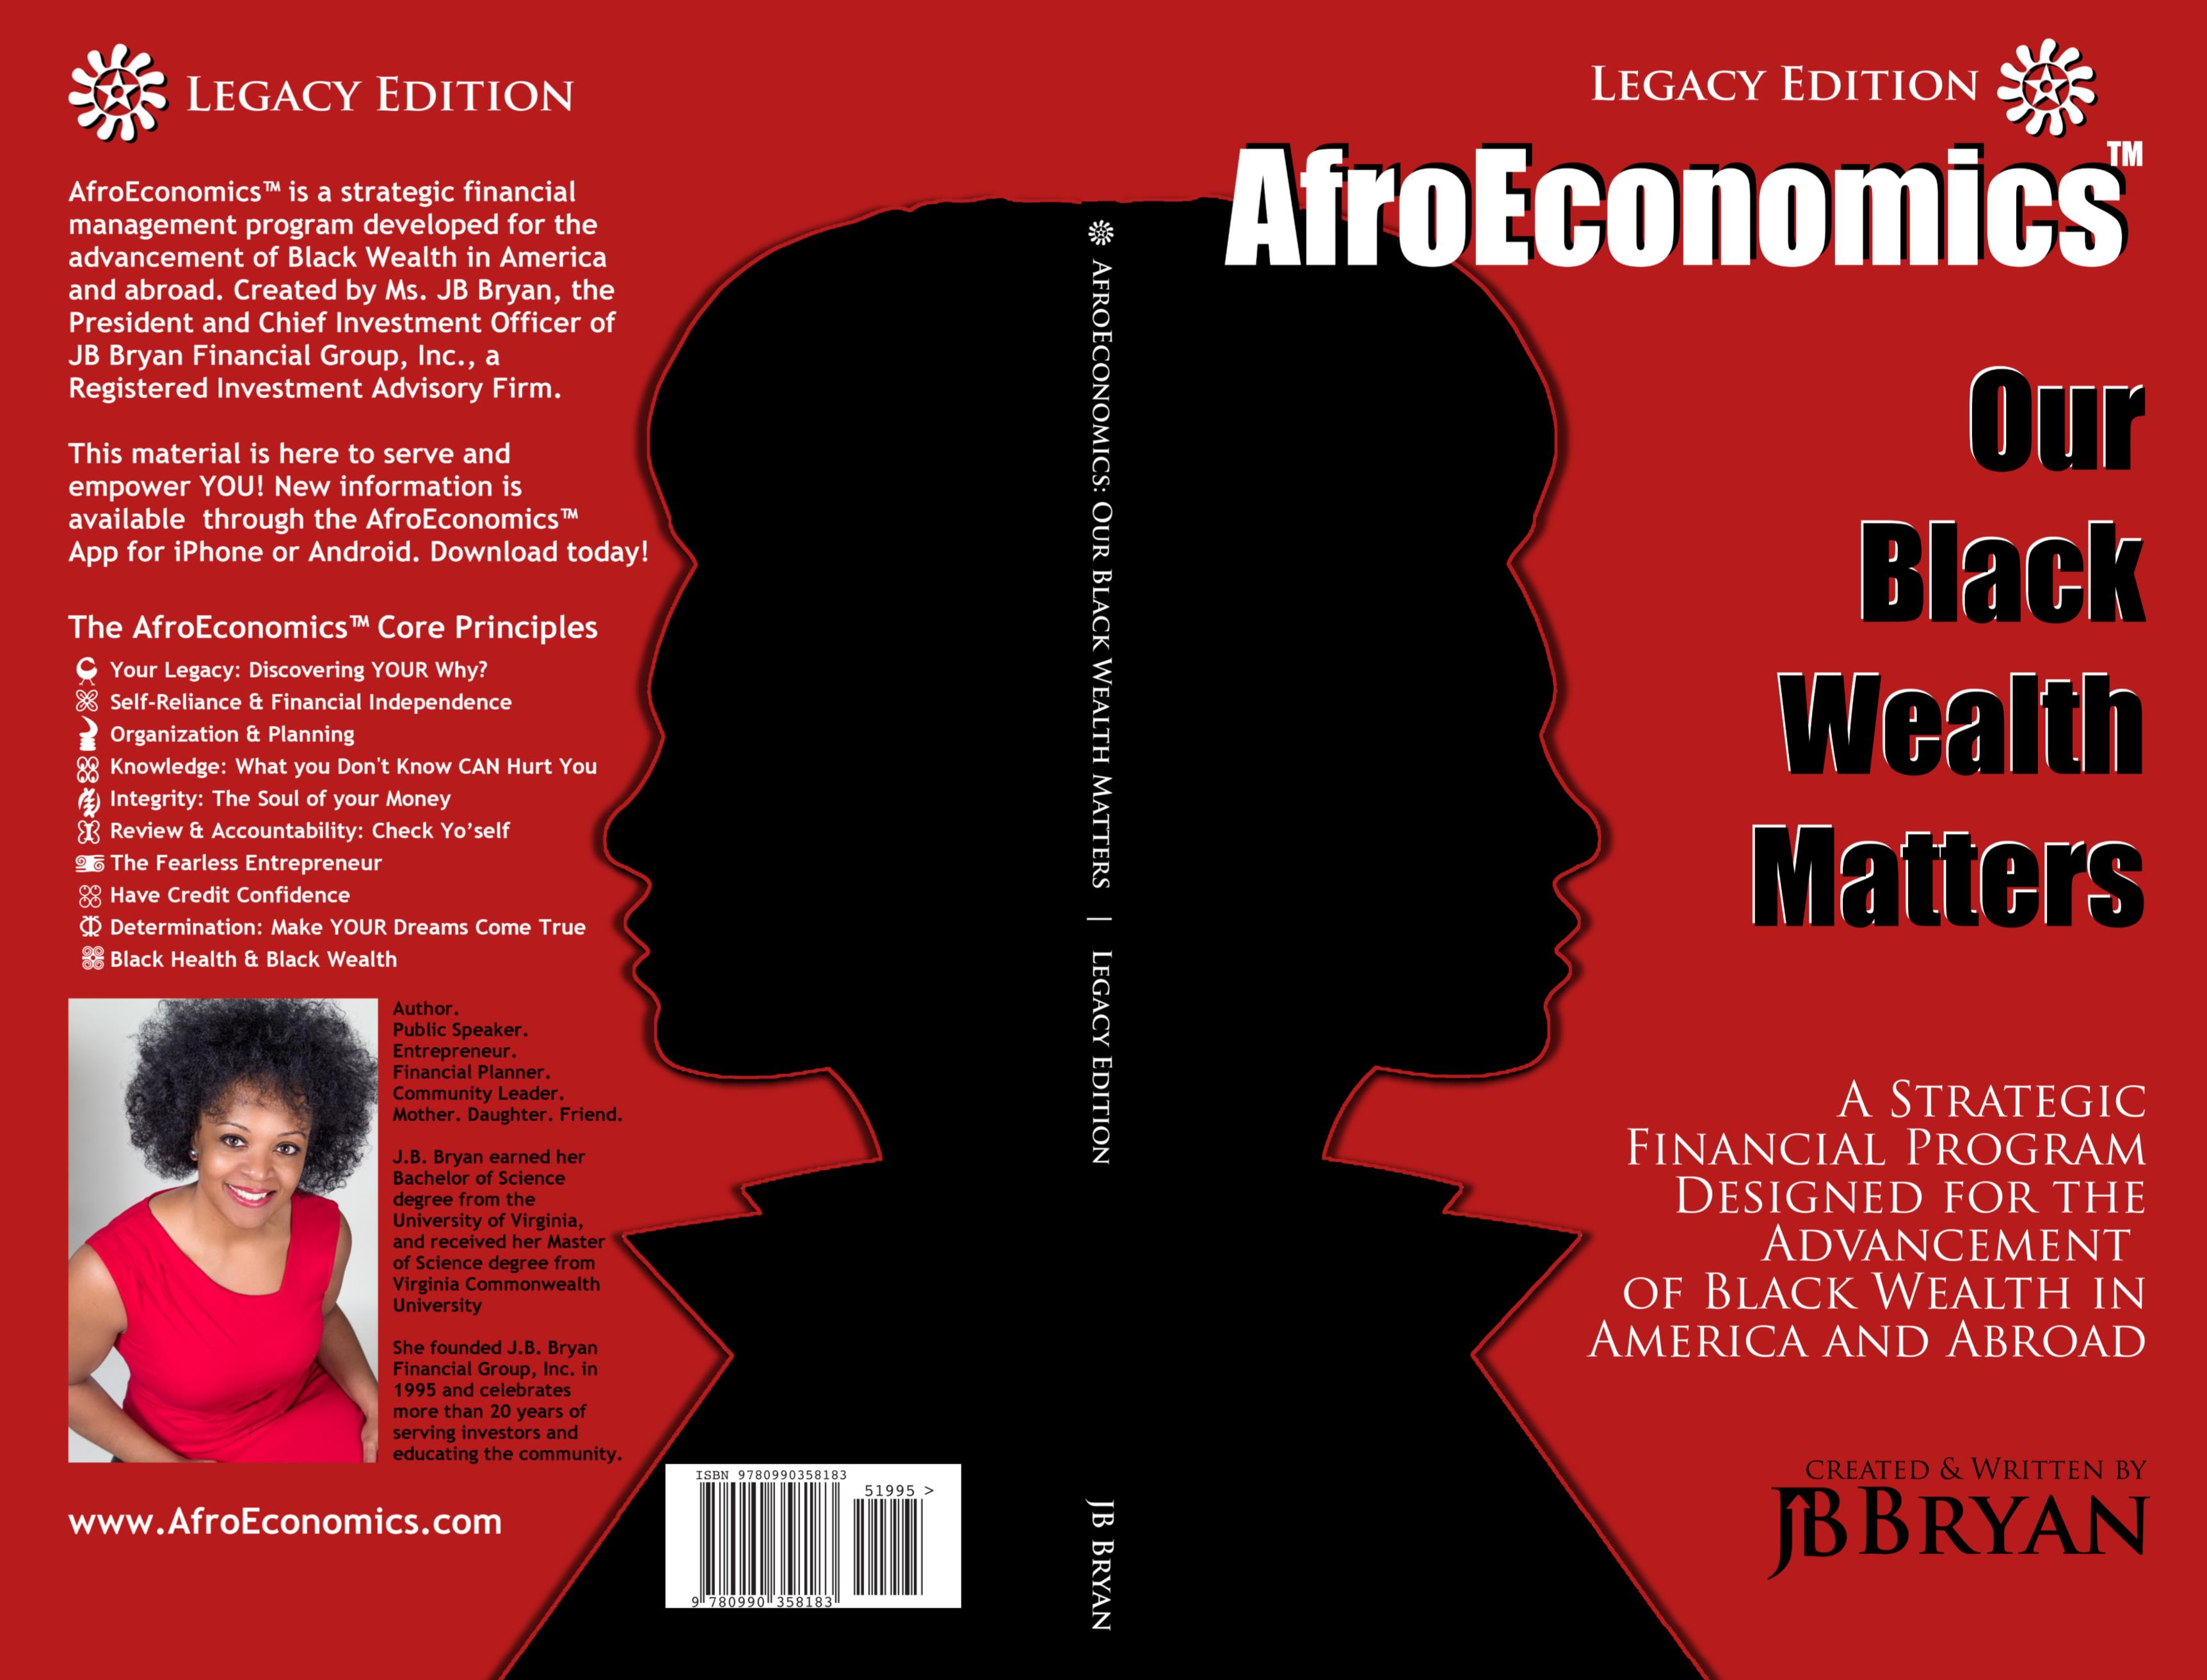 AFROECONOMICS: Black Wealth Matters (Legacy Edition) cover image